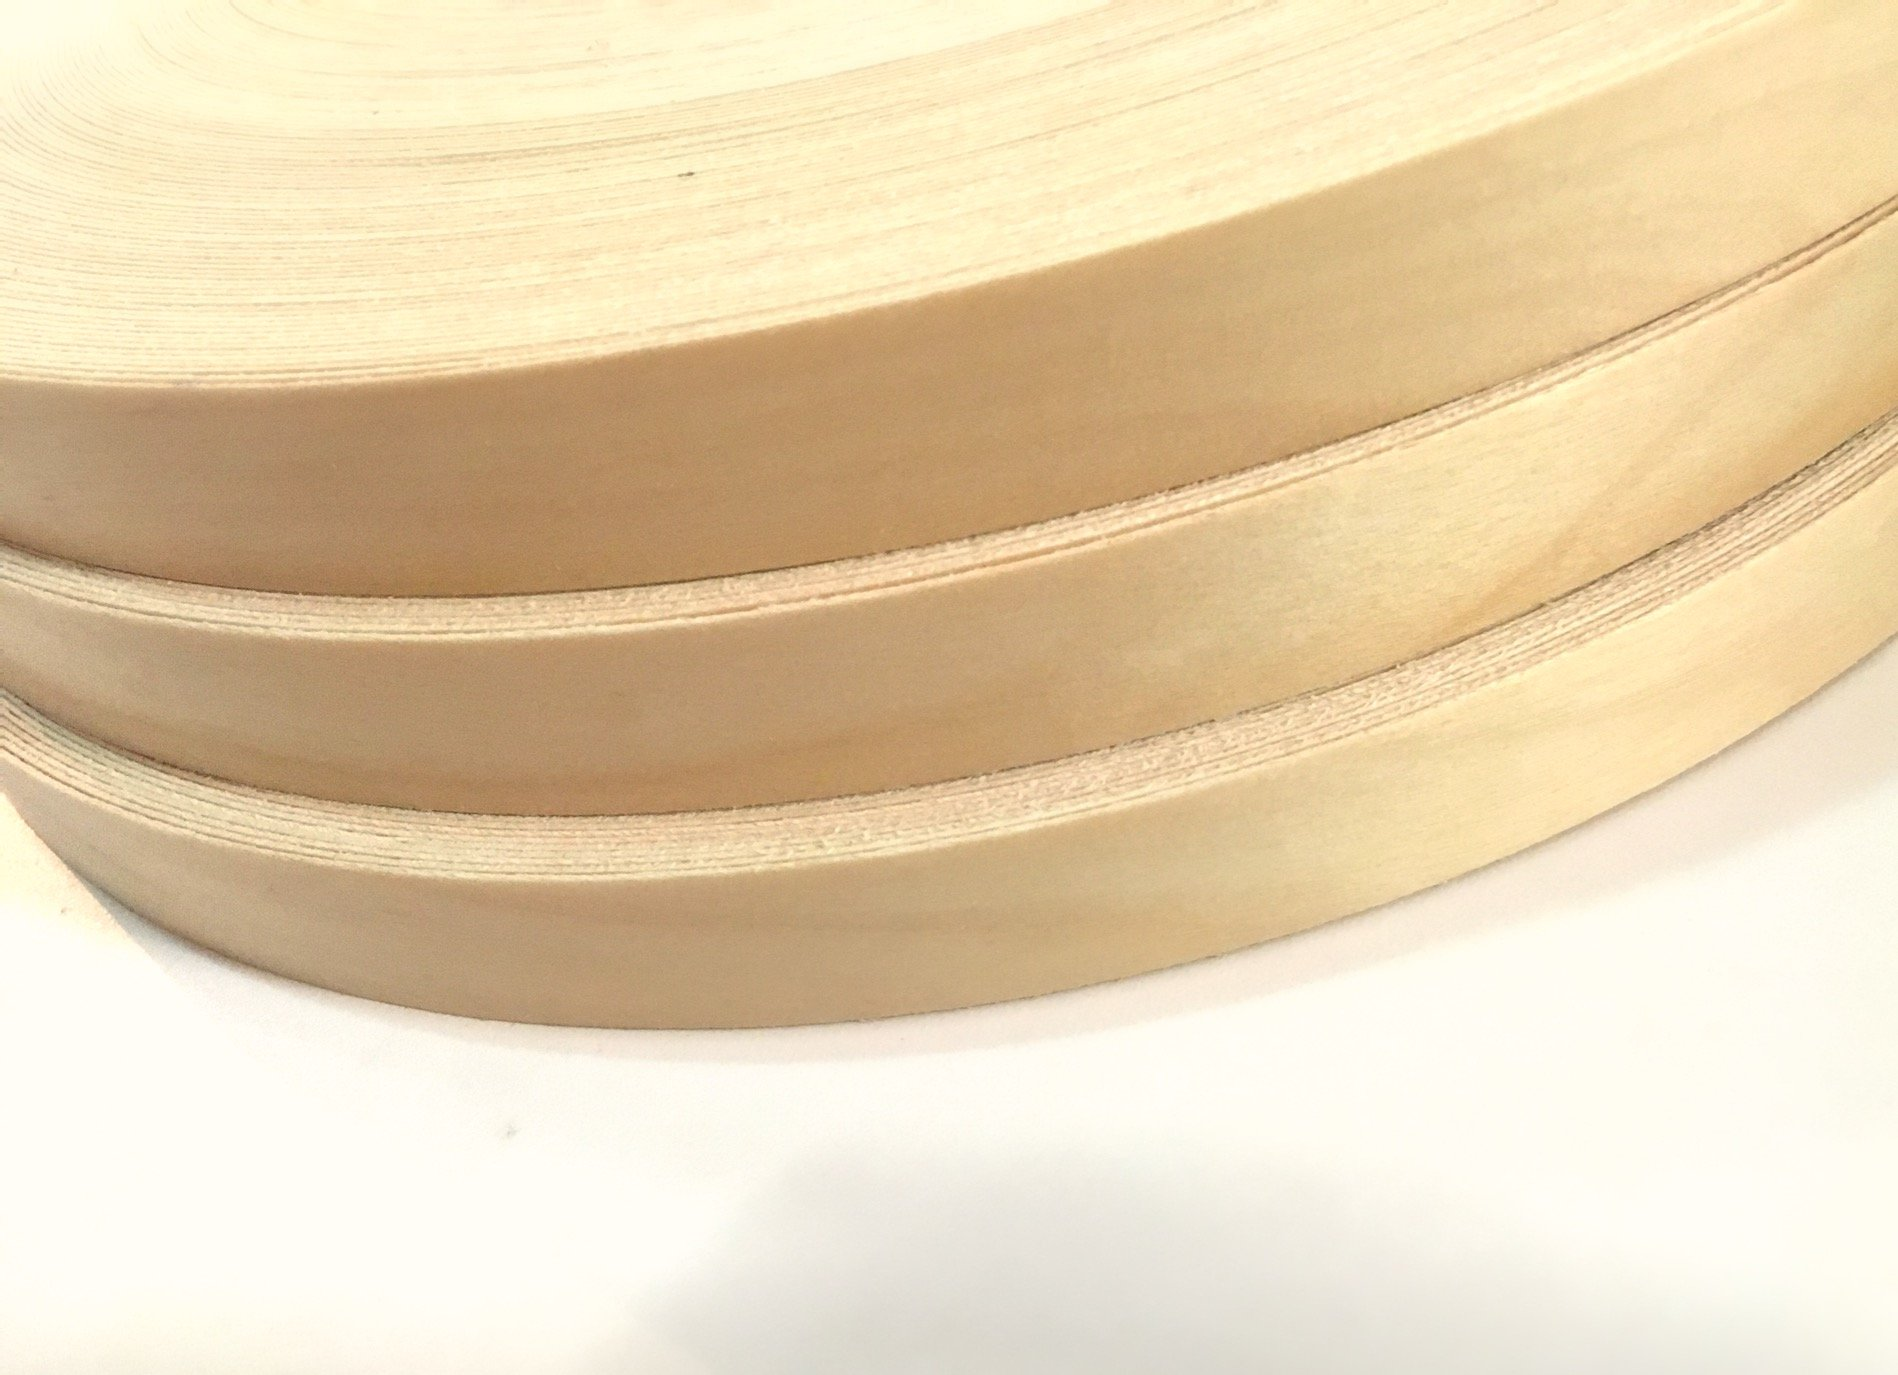 Maple Pre-finished 7/8'' X 500' Automatic (Non Glued) Wood Veneer Edgebanding. Clear UV Laquer Finish. Made in USA.